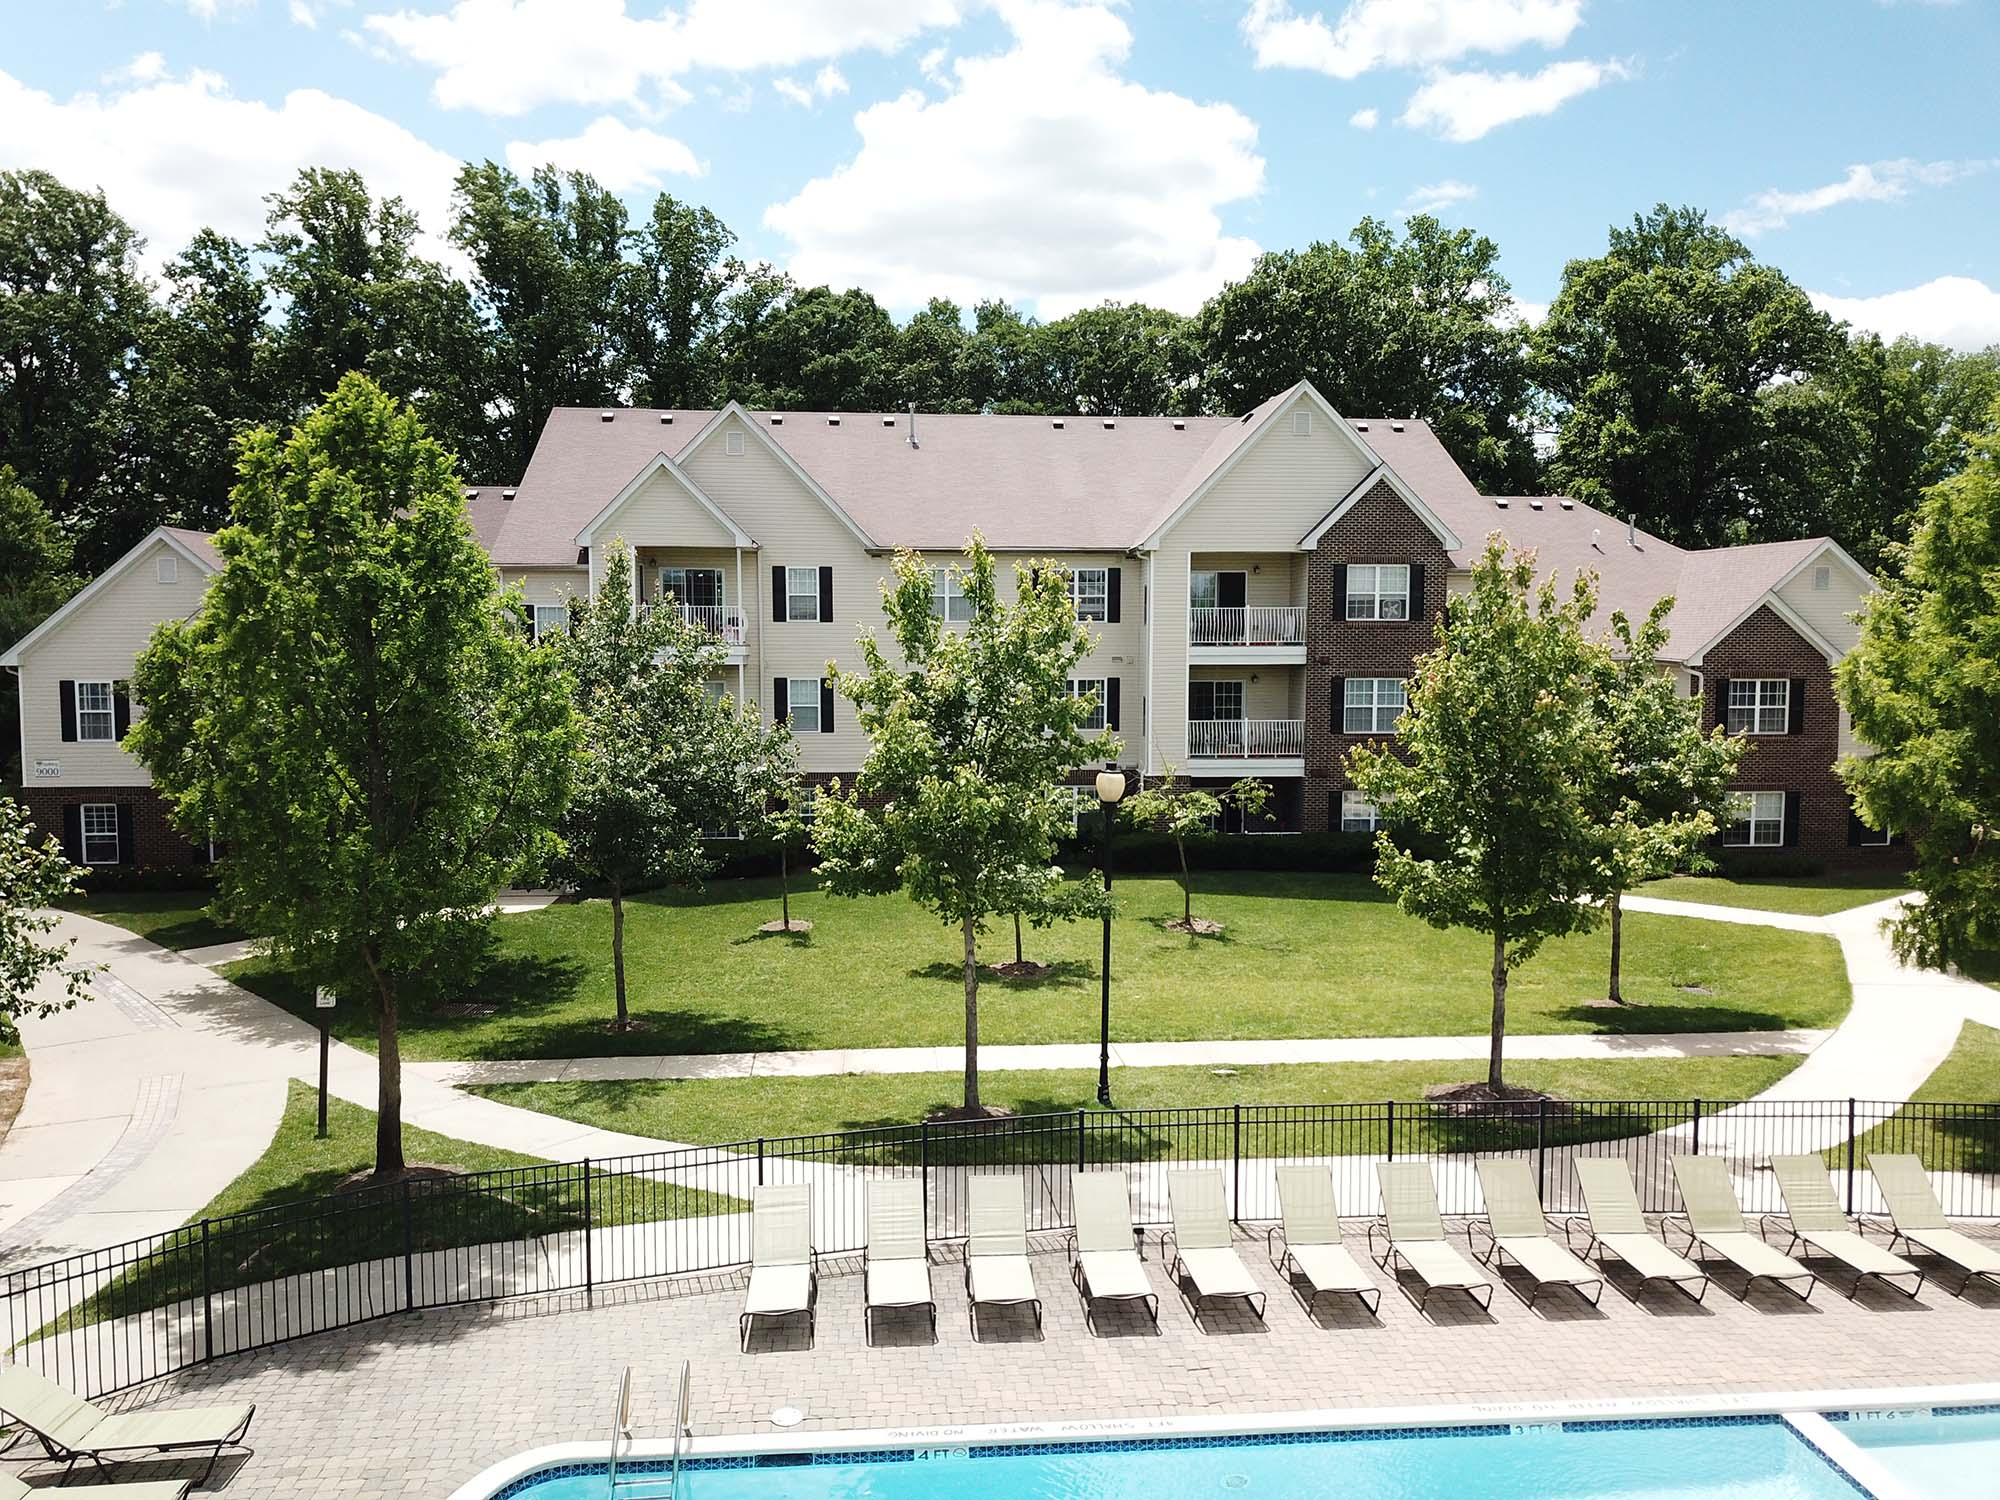 Remarkable Affordable Housing Rentals In Windsor Woods Princeton Download Free Architecture Designs Grimeyleaguecom